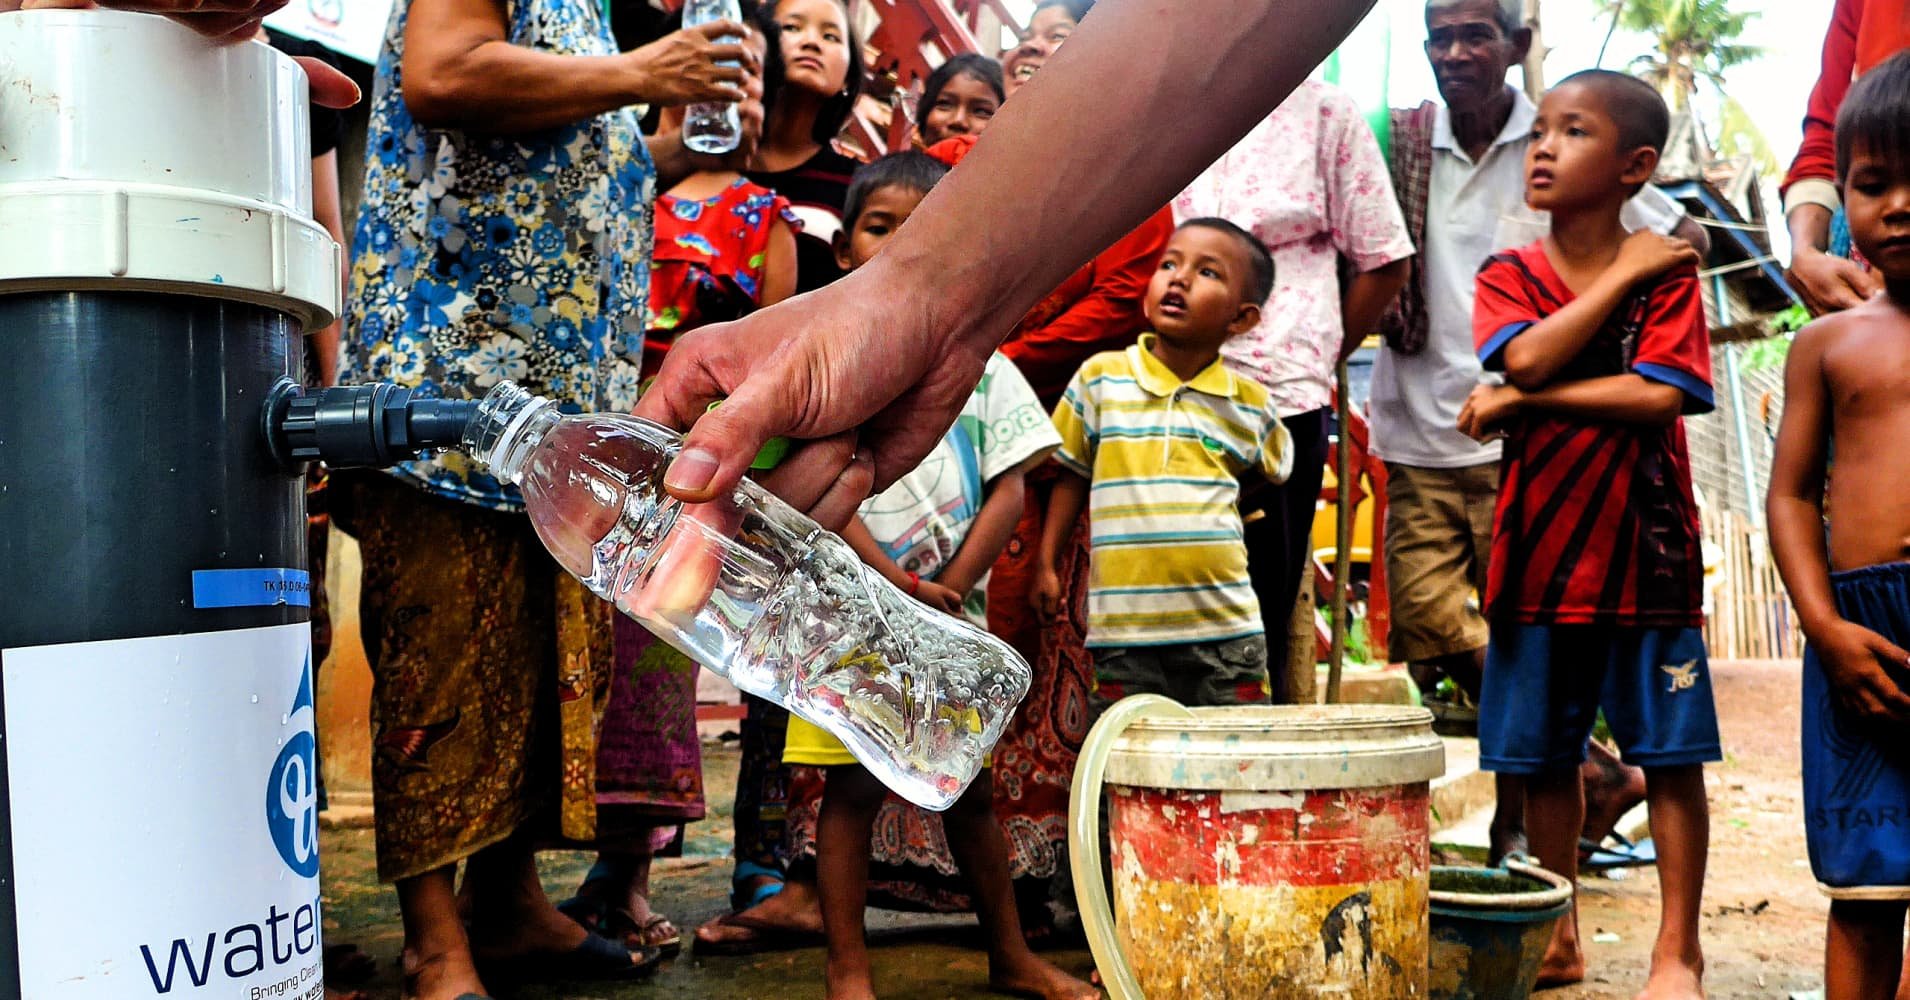 WateRoam's water filtration system providing clean water to a remote village in Southeast Asia